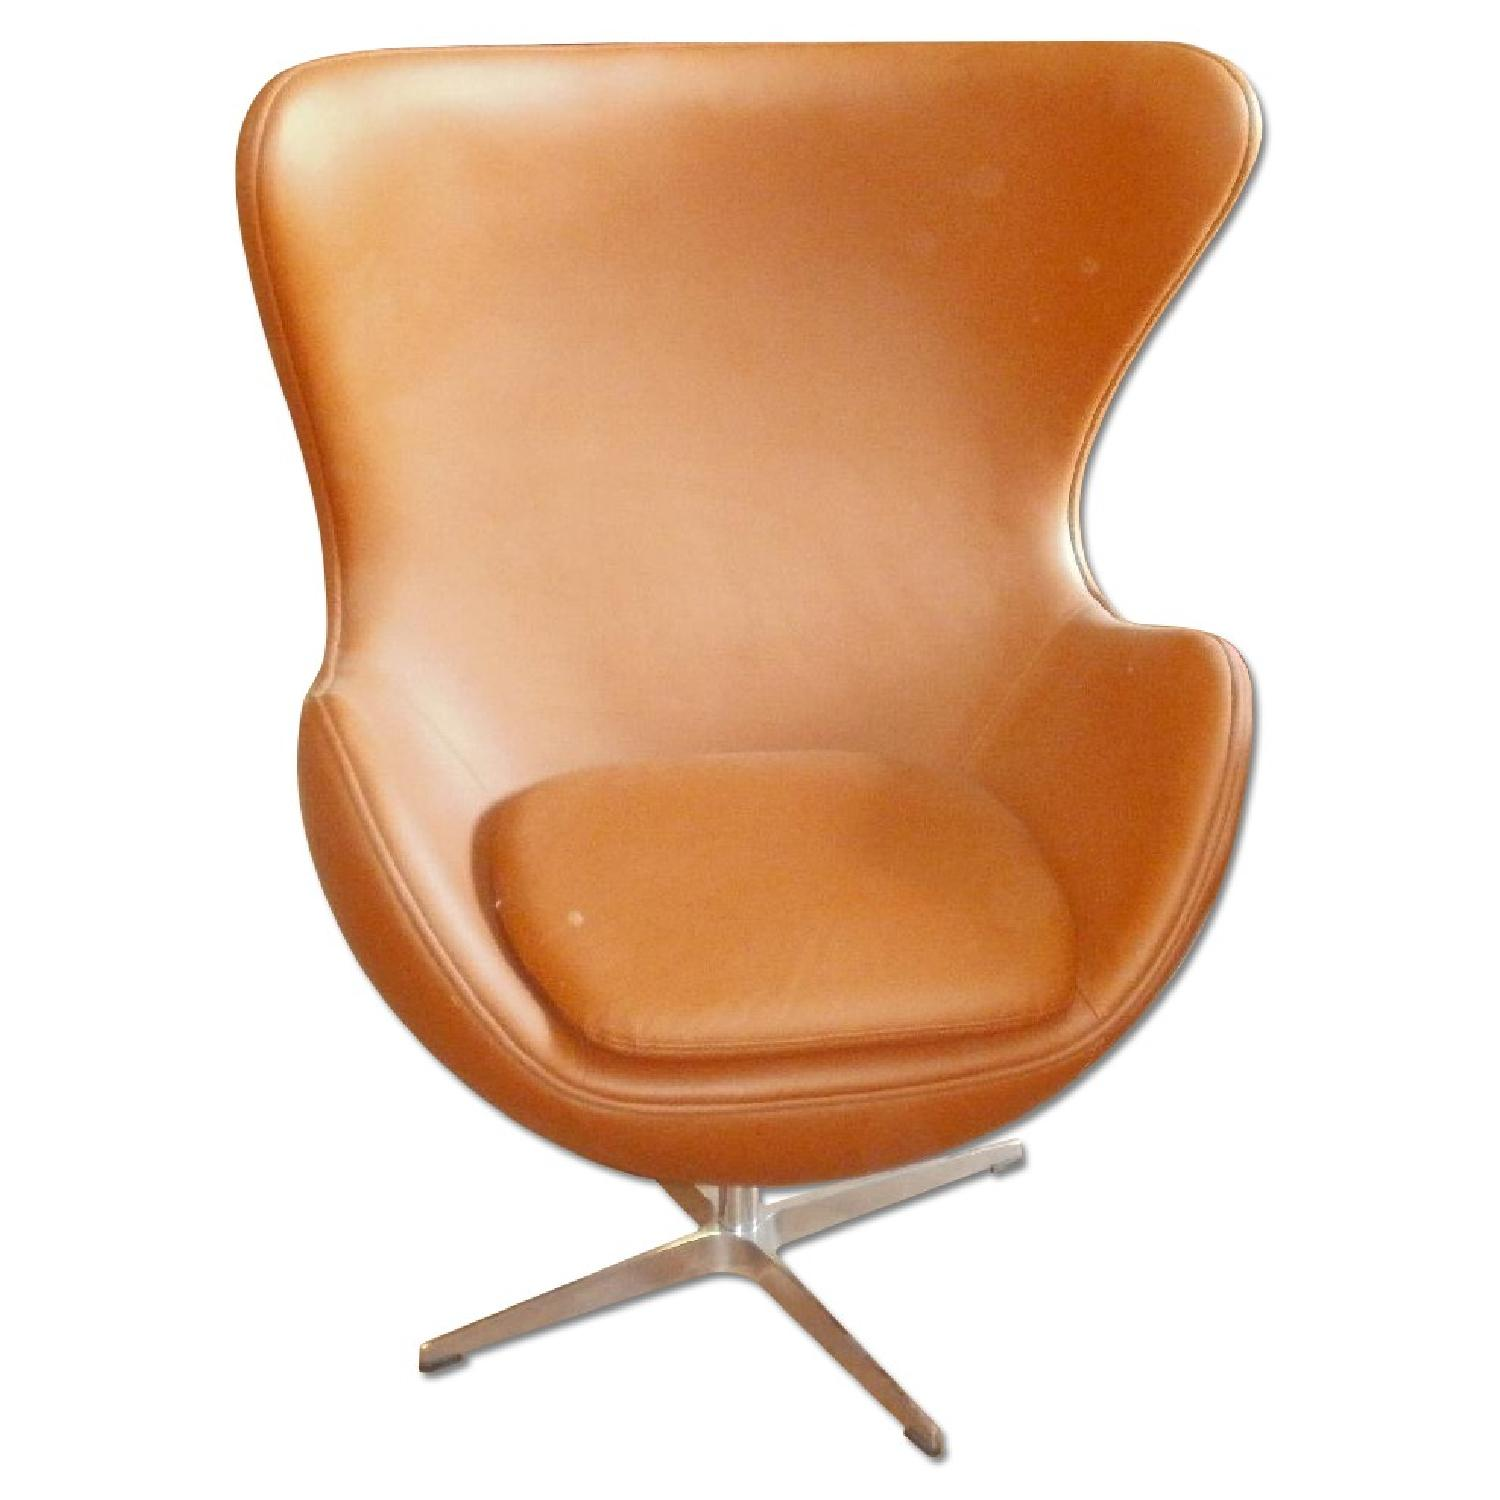 Mid-Century Style Egg Chair in Premium Light Brown Leather - image-0